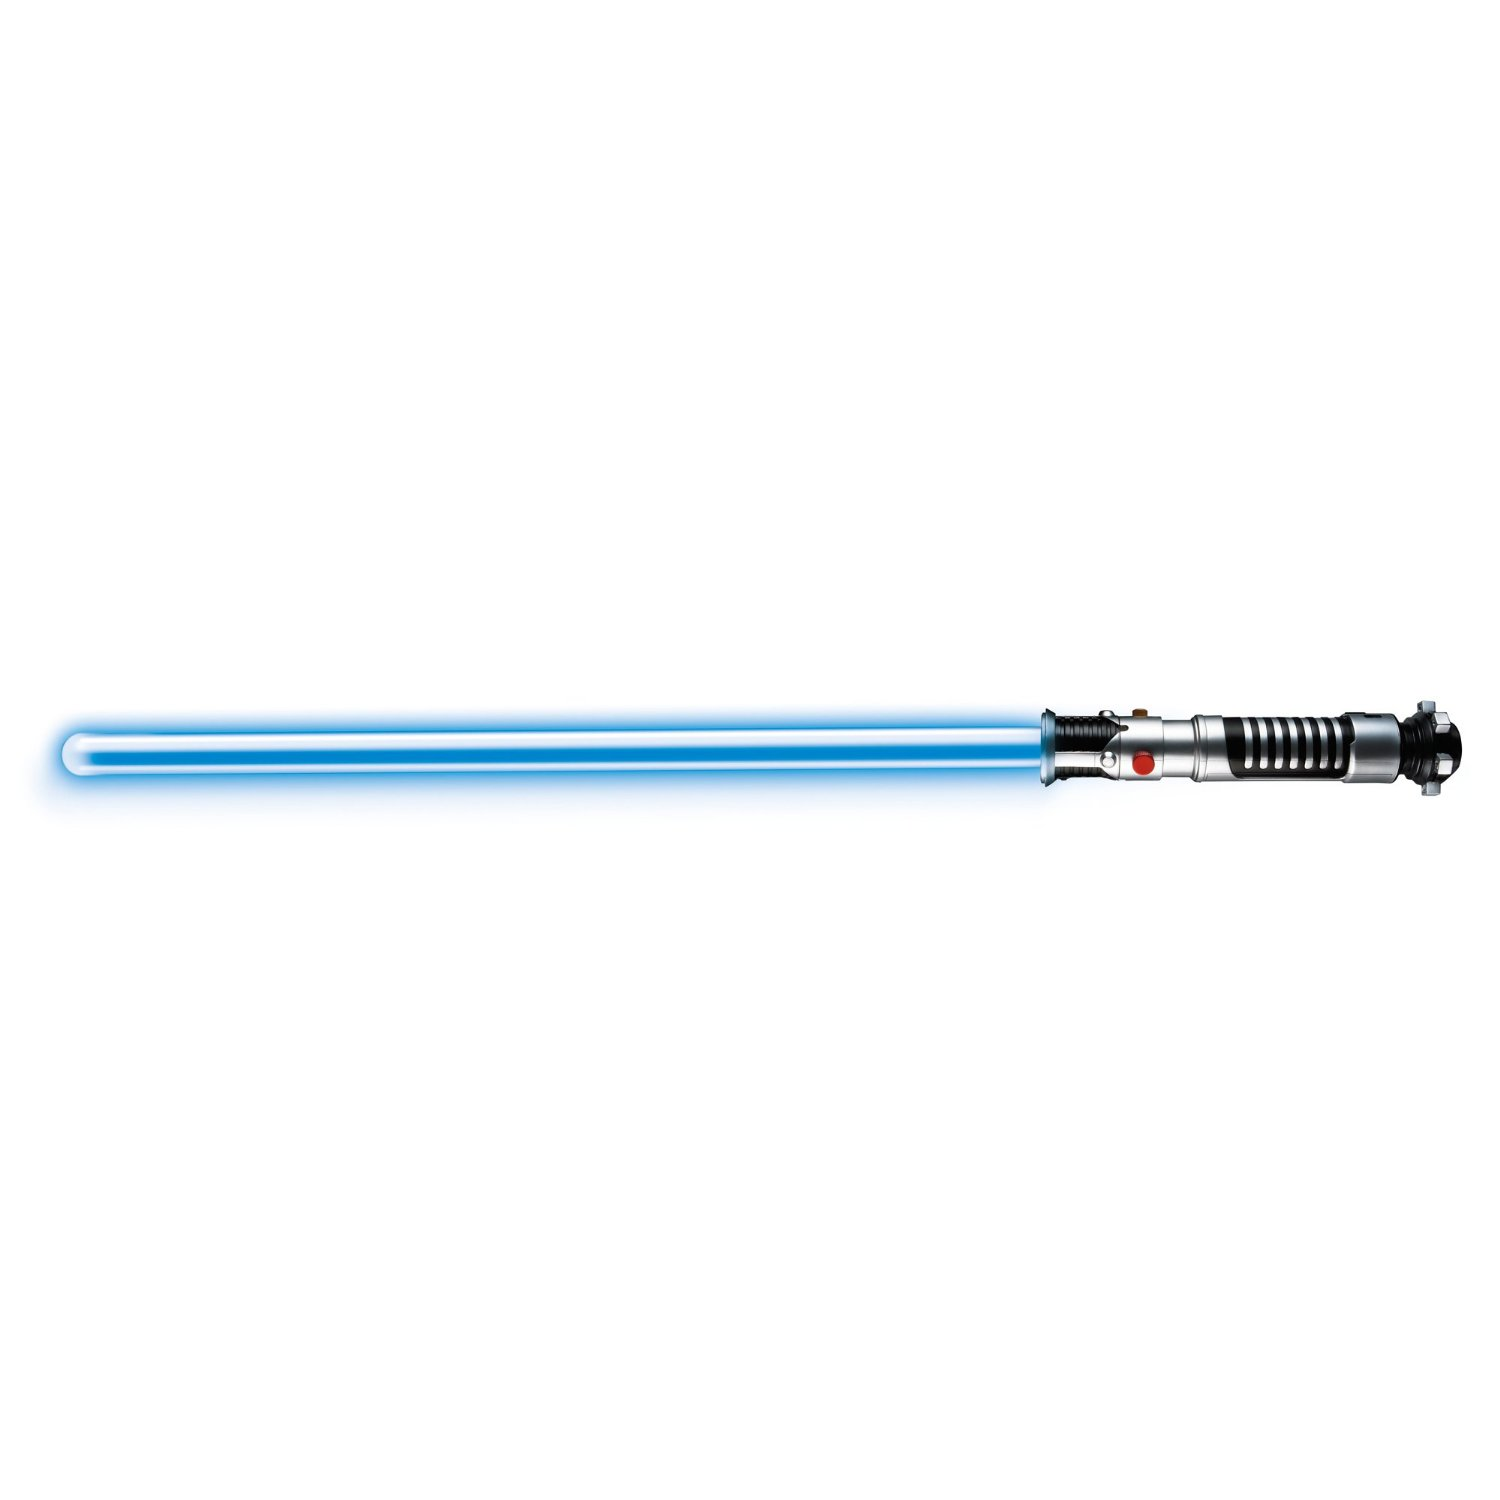 Star wars clipart black and white sword.